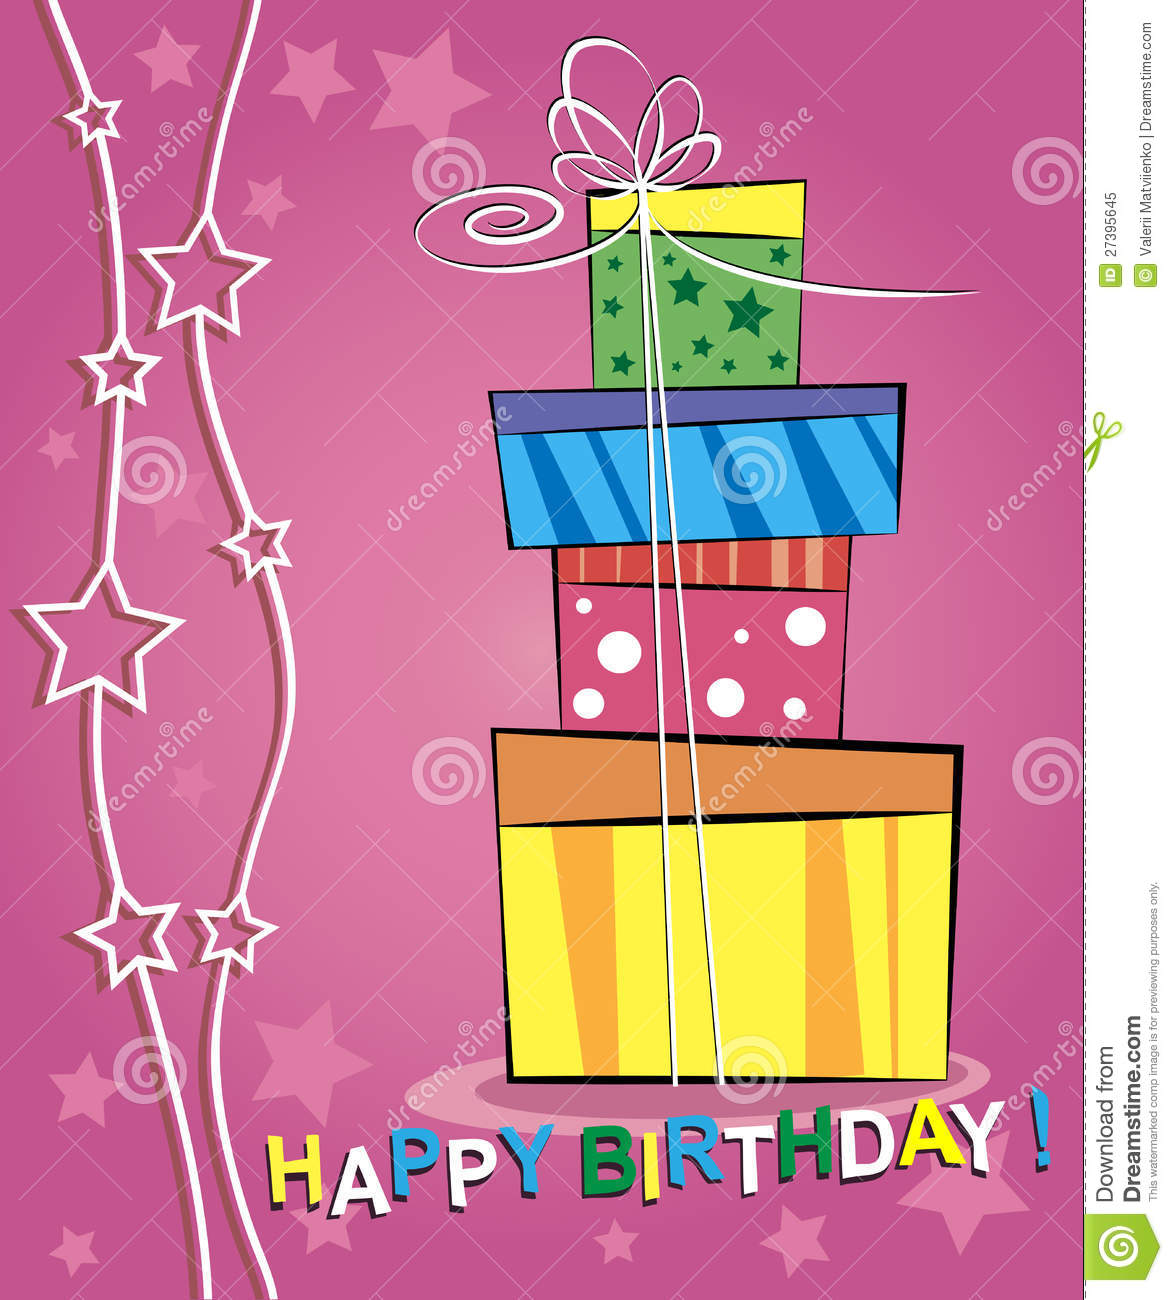 Birthday card design online etamemibawa birthday card design online bookmarktalkfo Images